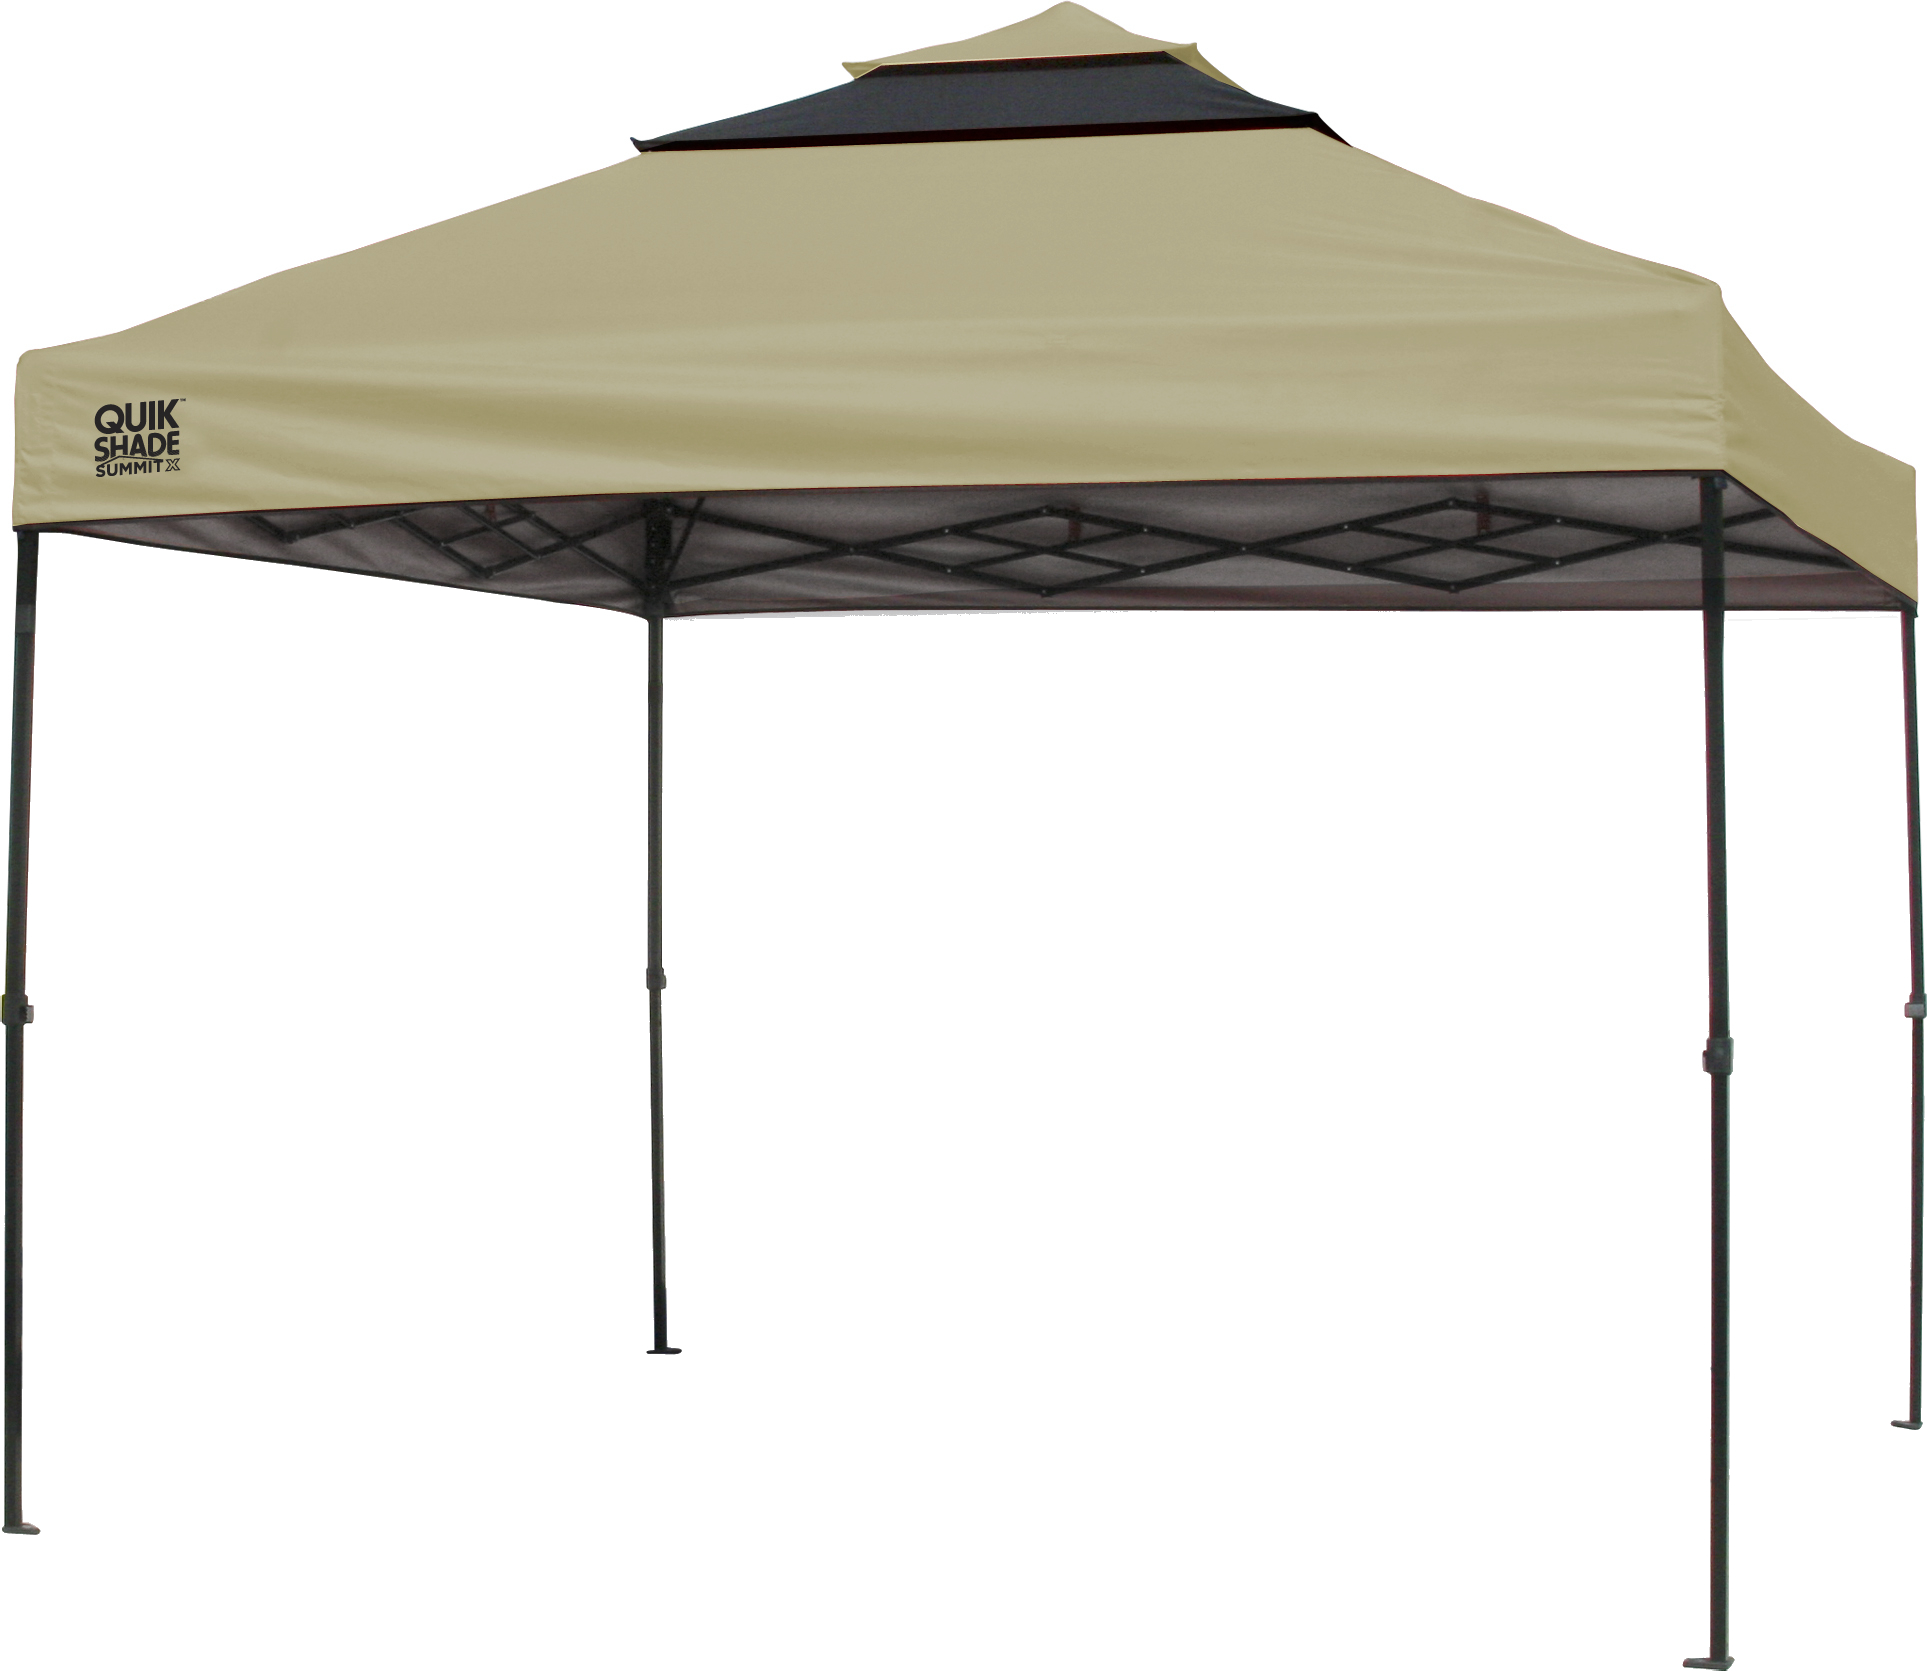 Quik Shade SX100 10x10 Instant Canopy - Taupe/Graphite  sc 1 st  Sears & Replacement Canopy For Quik Shade